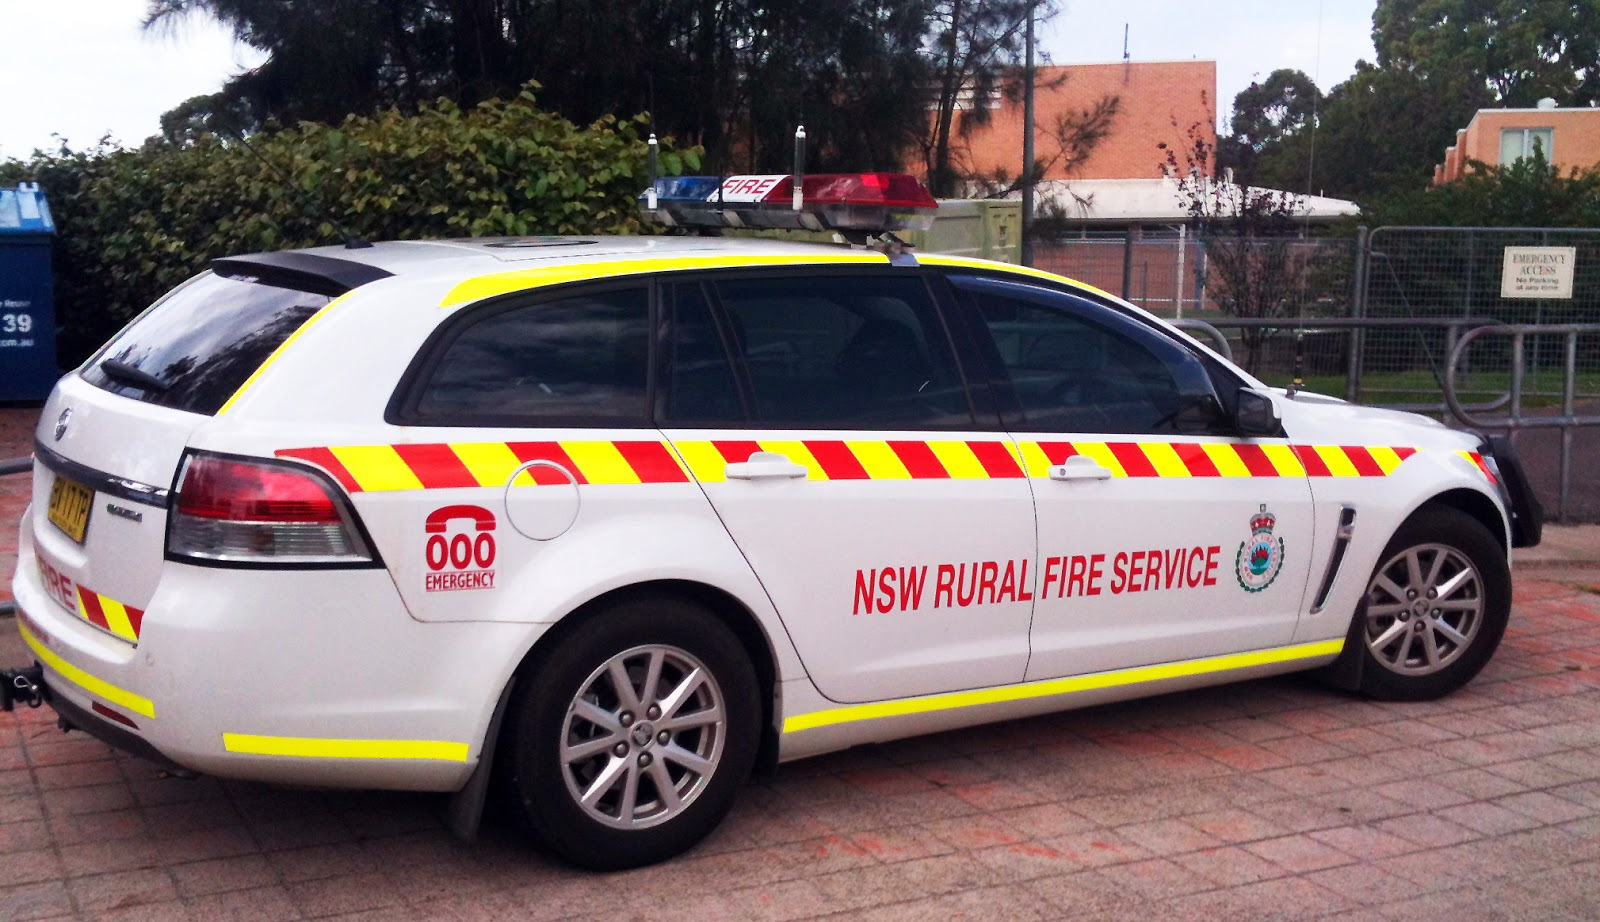 NSW RADIO AND COMMUNICATIONS - by Michael Bailey: RURAL FIRE